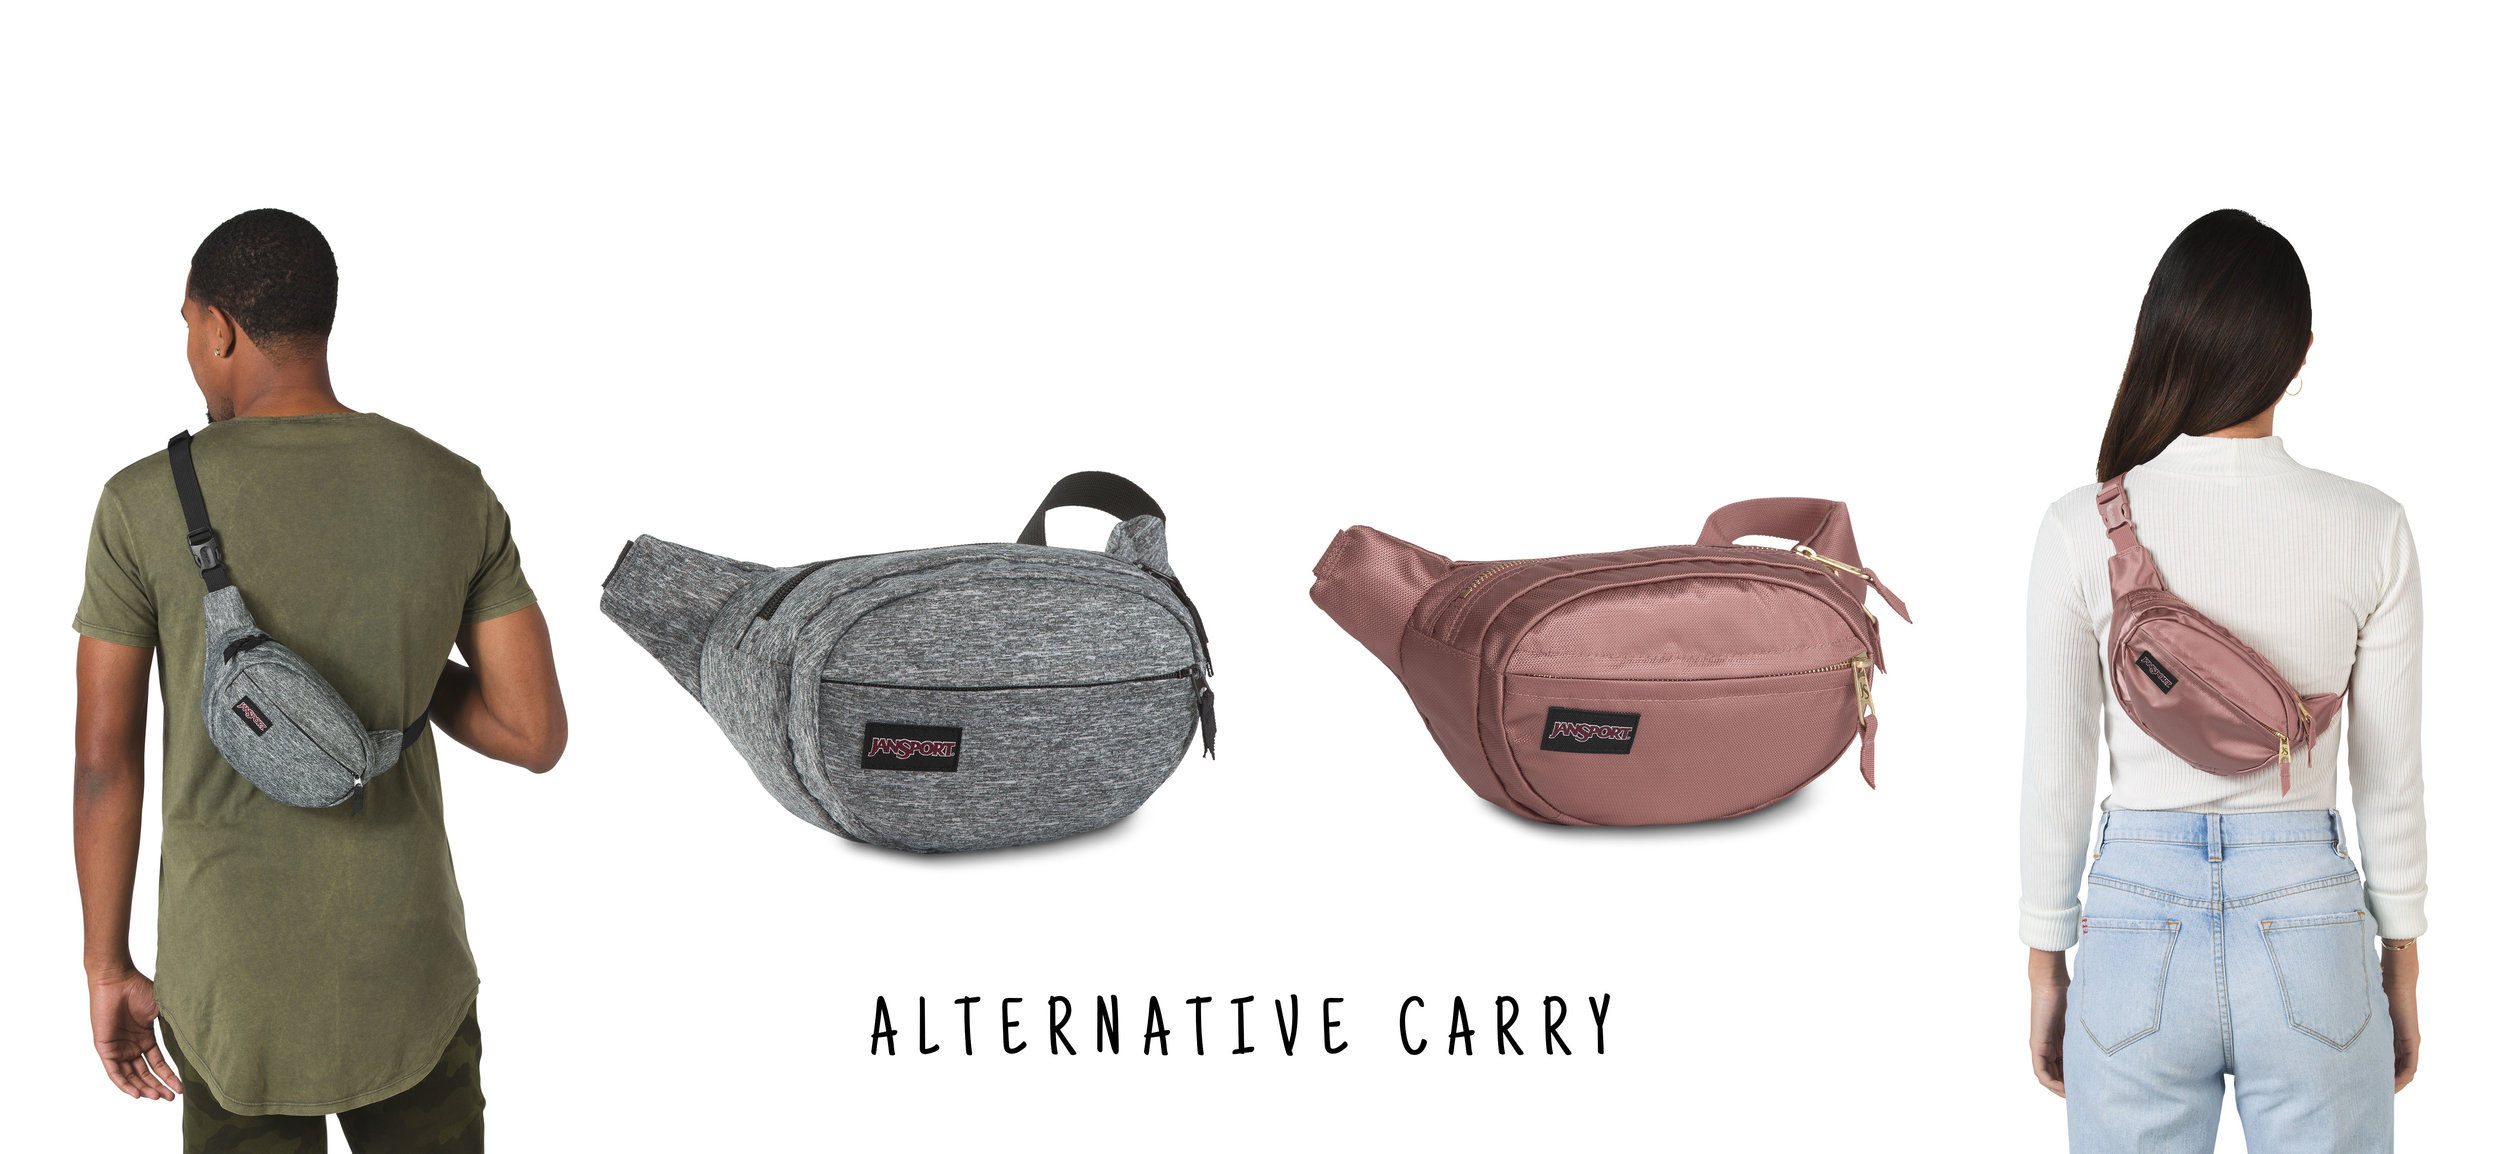 ALTERNATIVE CARRY6.jpg